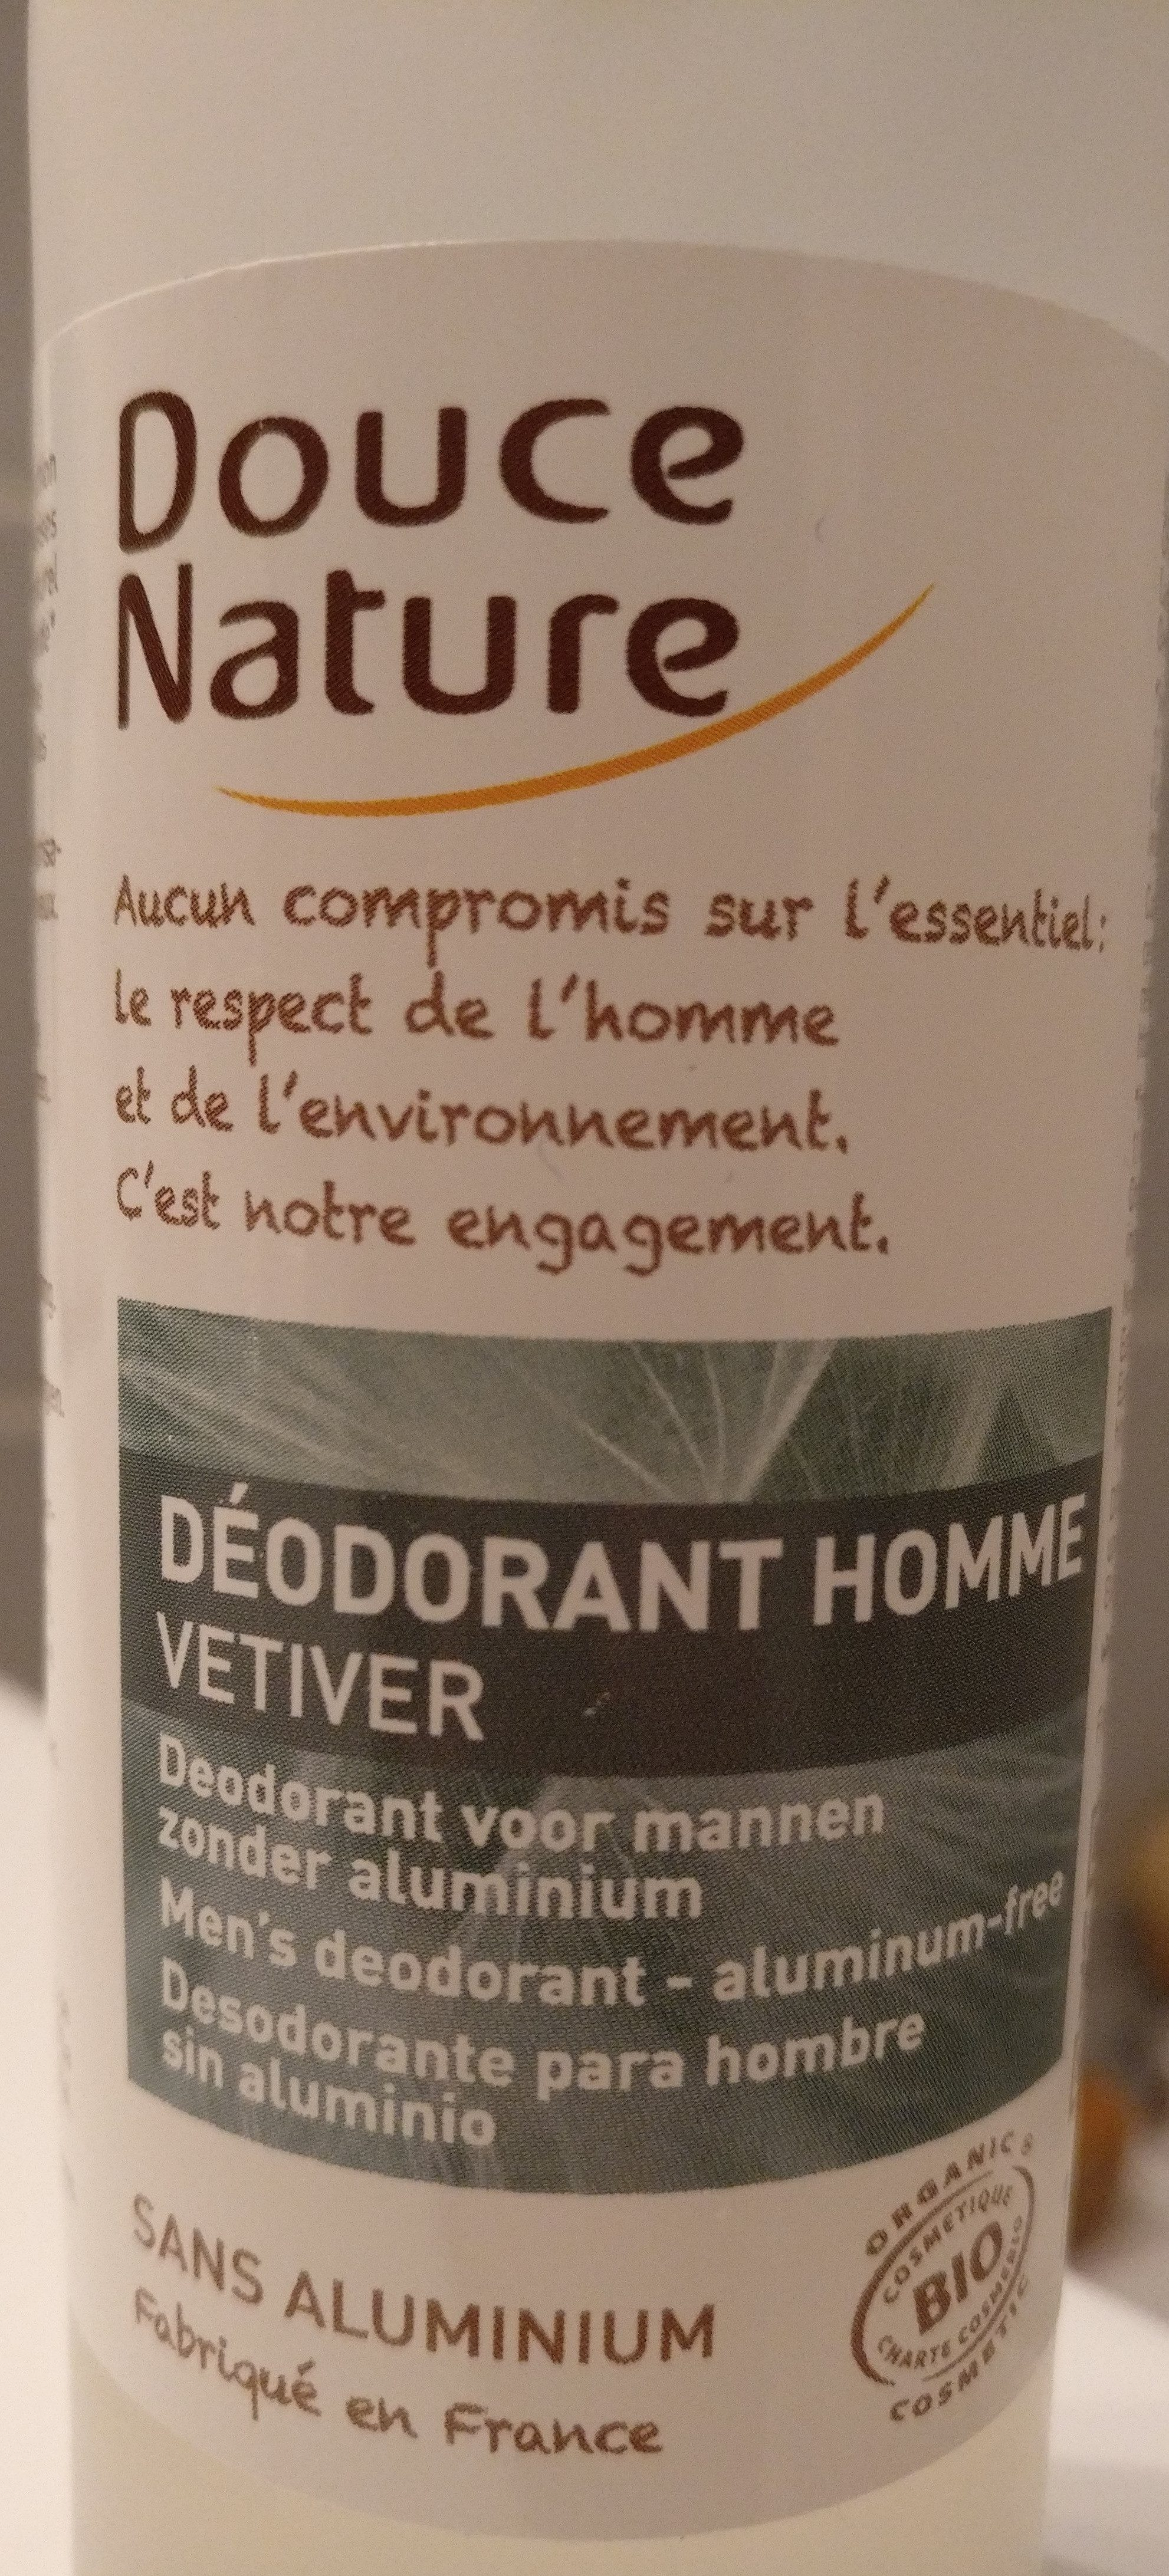 Déodorant homme Vetiver - Product - fr